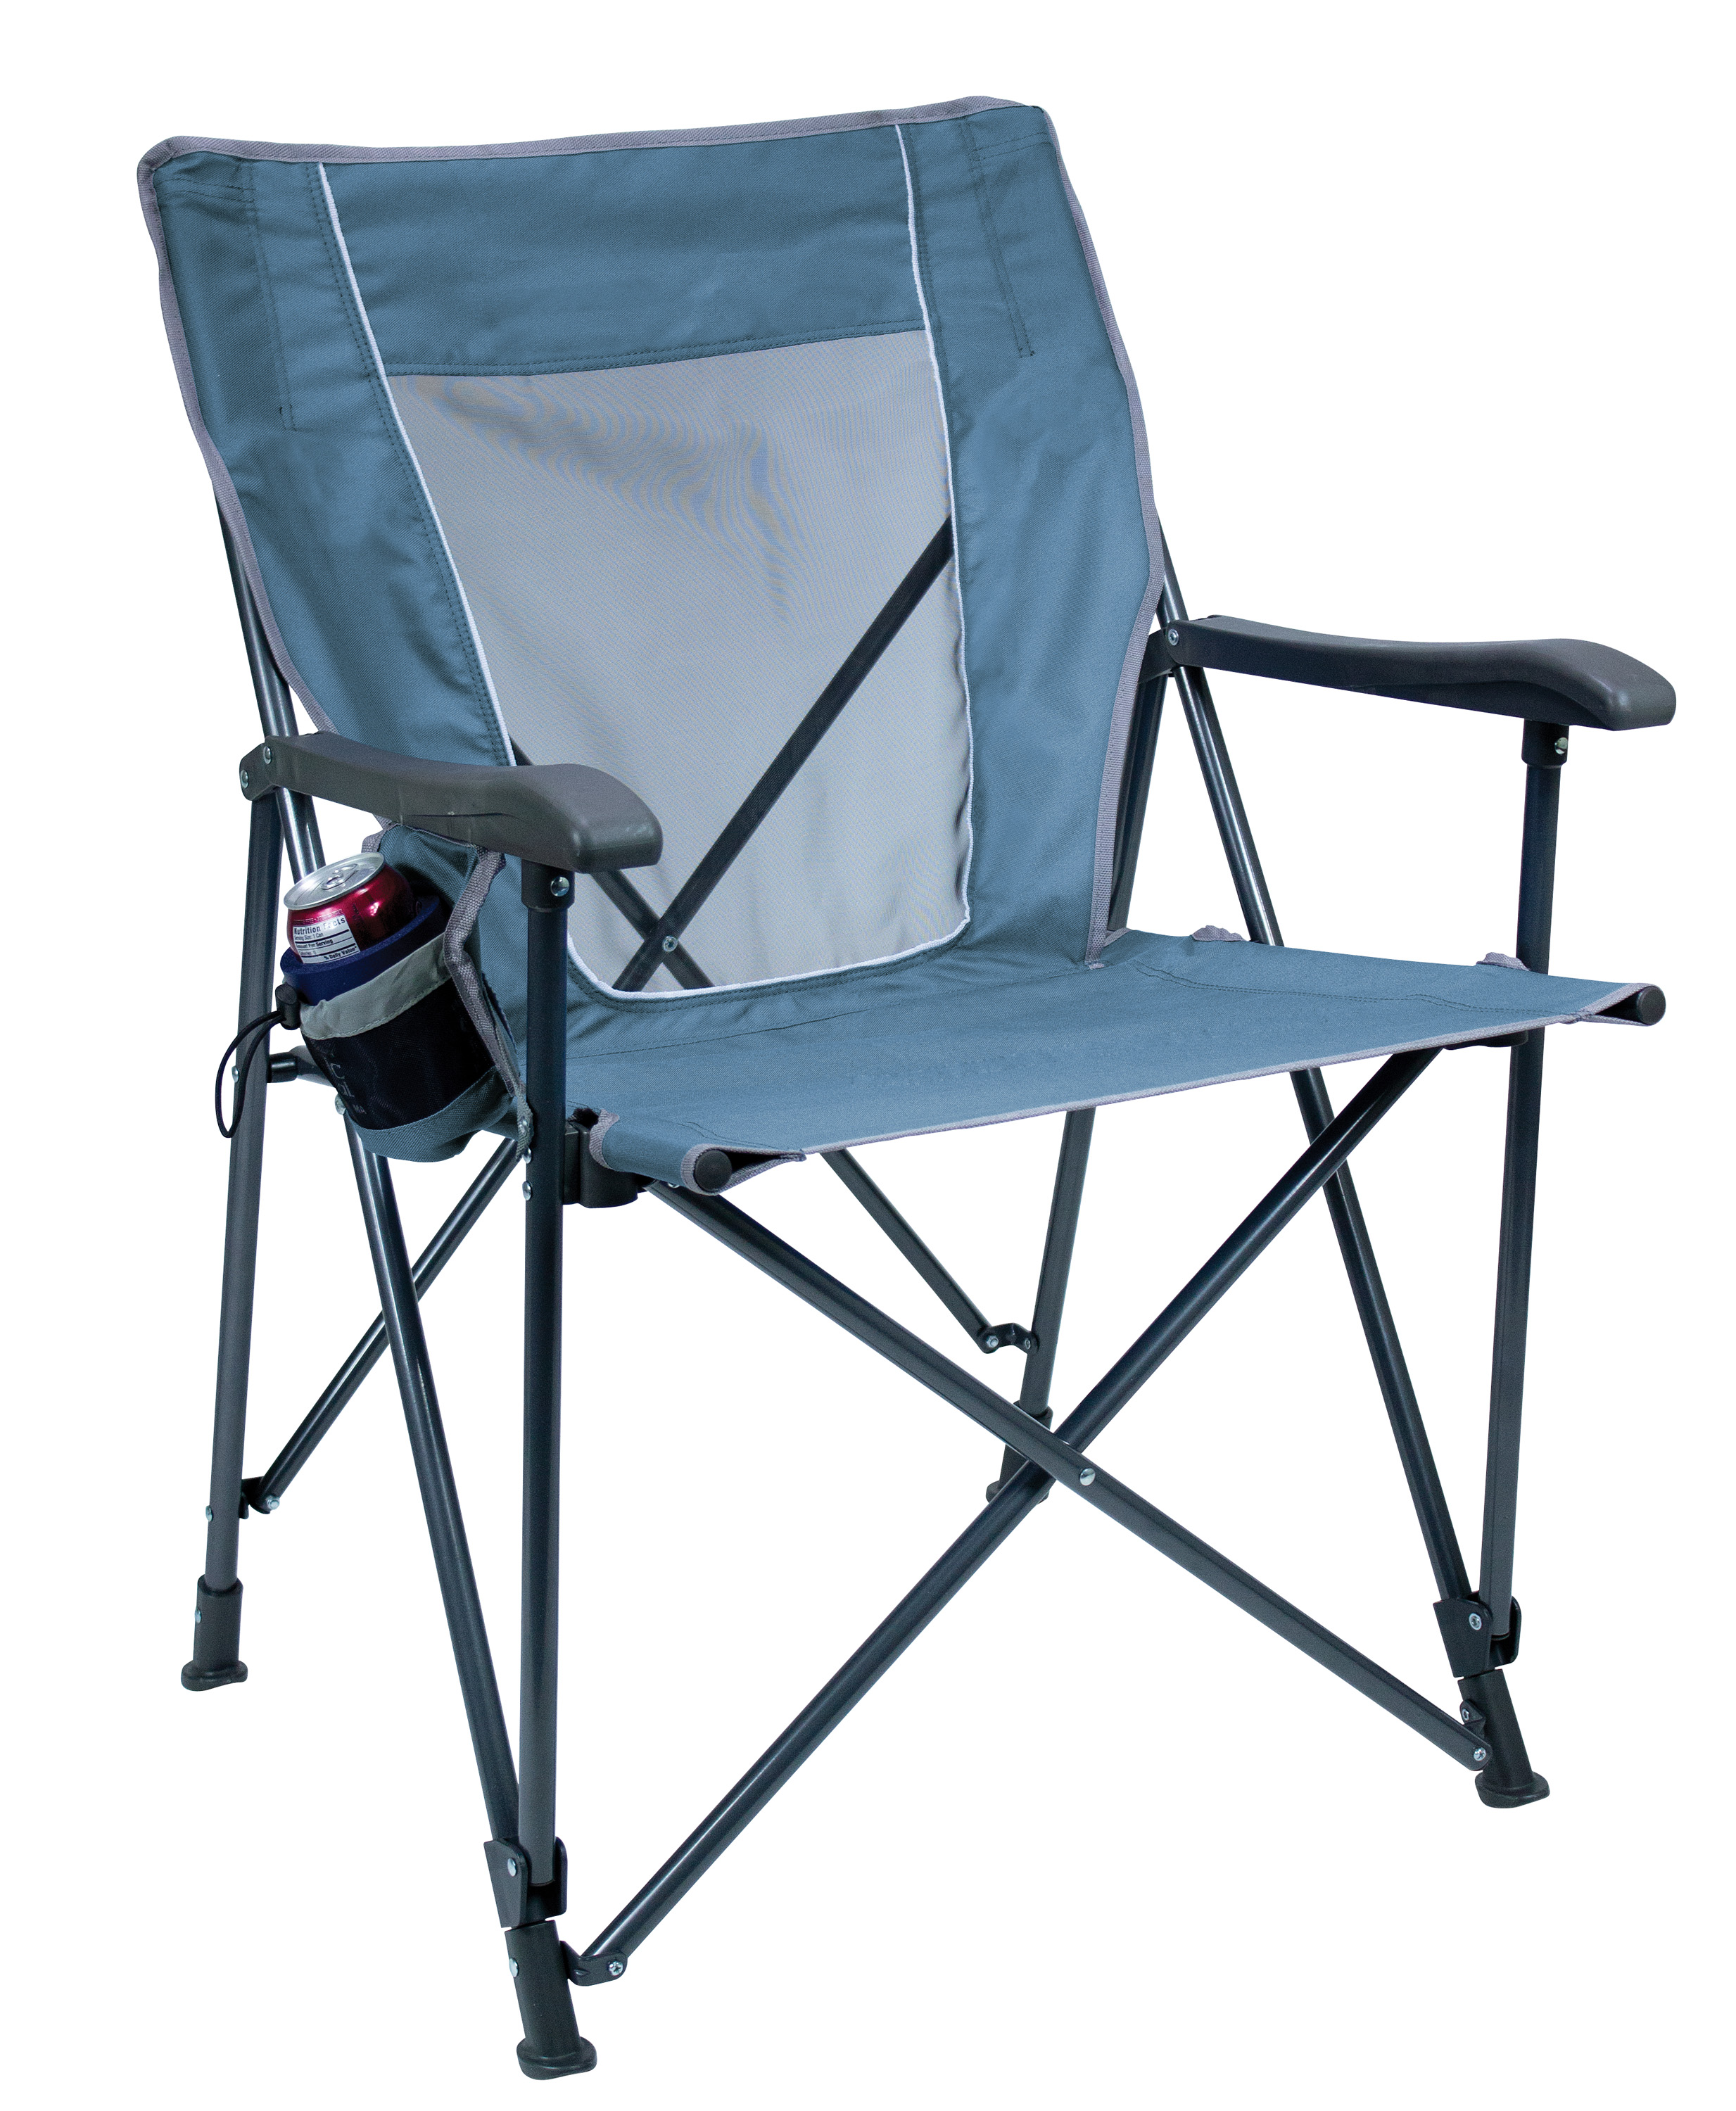 personalized camping chairs century chair company imprinted eazy by gci outdoor custom